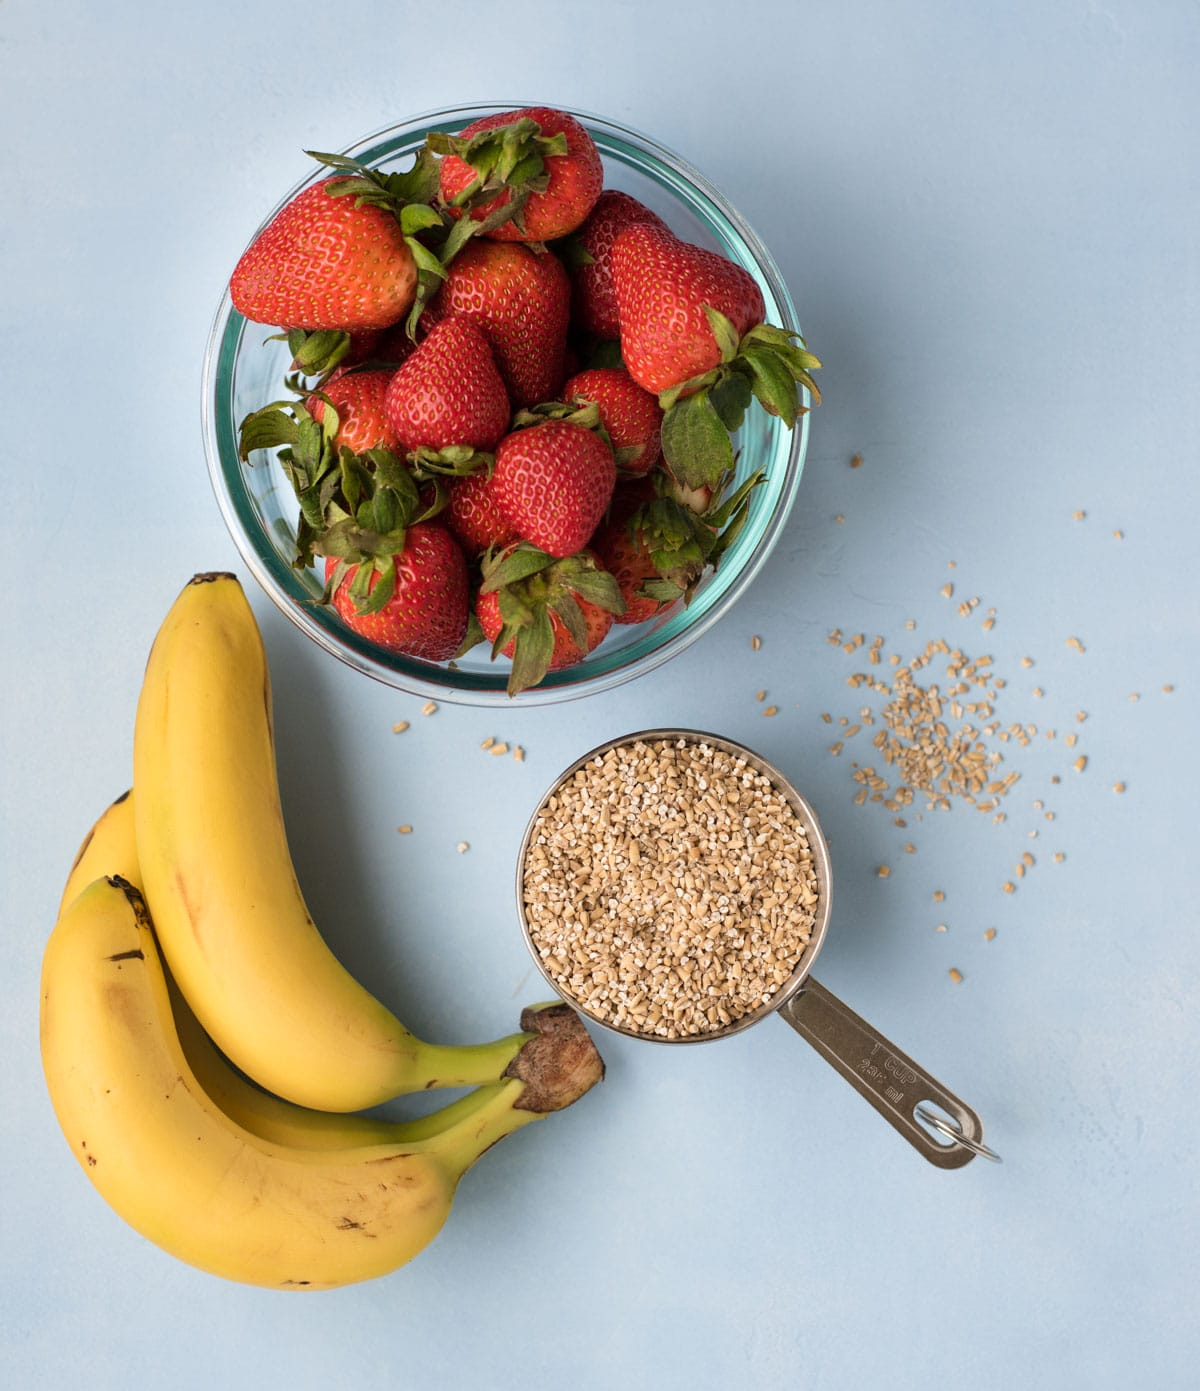 Strawberry Banana Steel Cut Oat Bake main ingredients: strawberry, banana, and steel cut oats